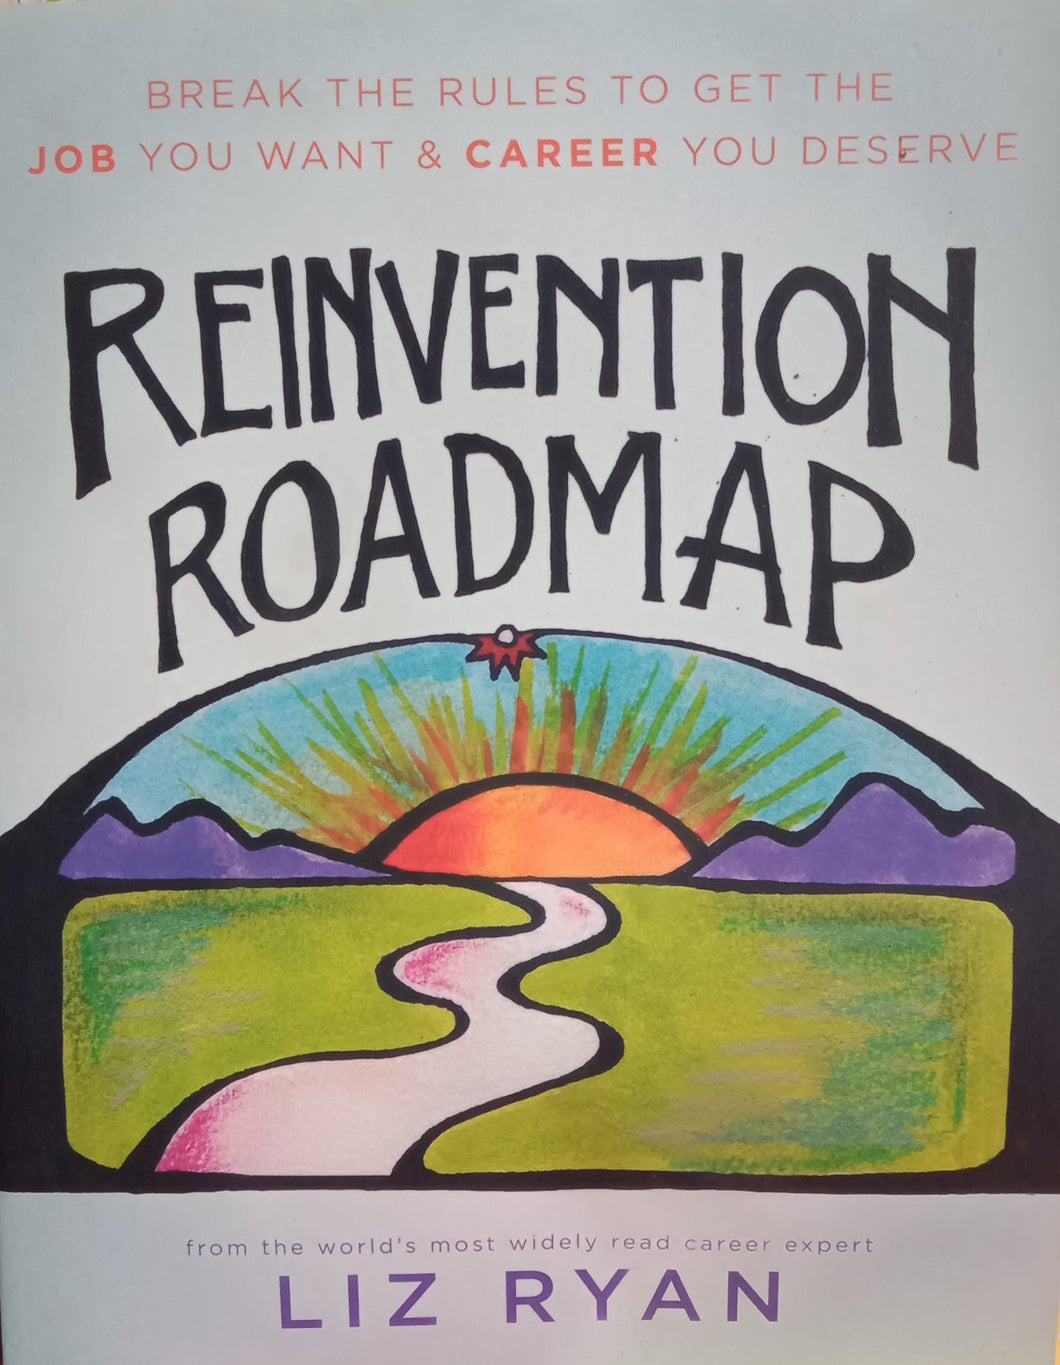 Reinvention roadmap By Liz Ryan